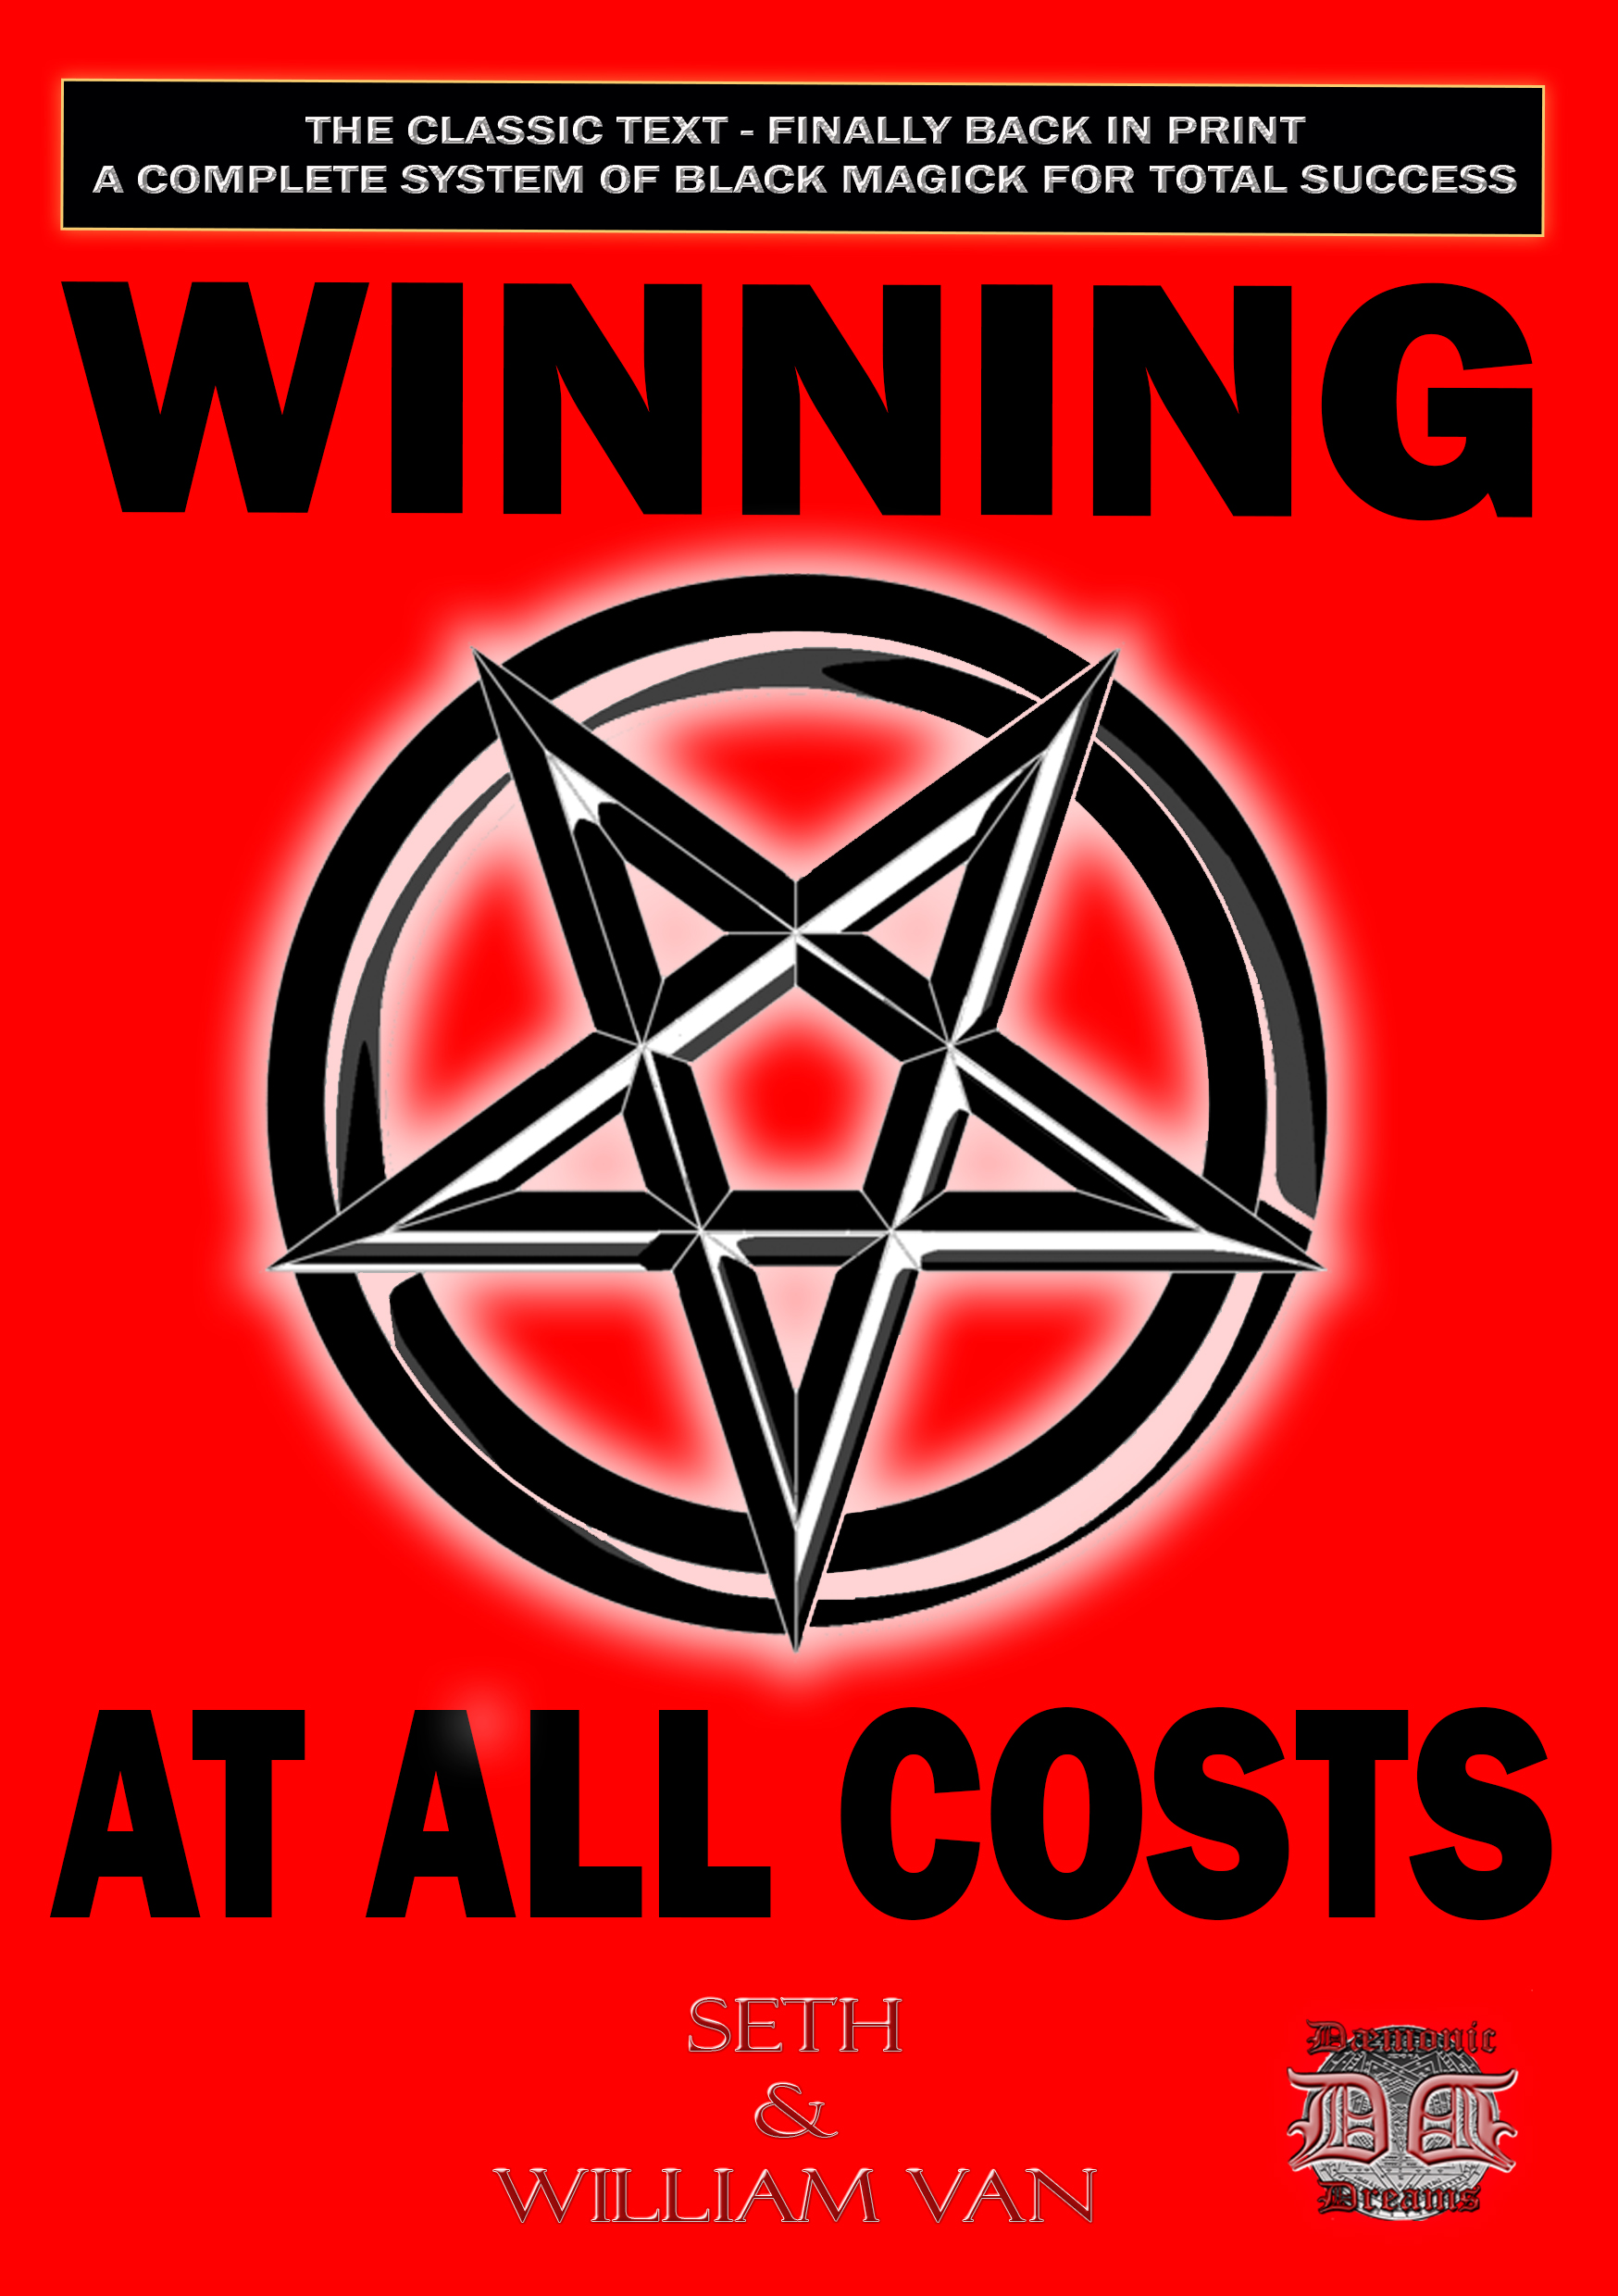 WINNING AT ALL COST By Seth & William Van